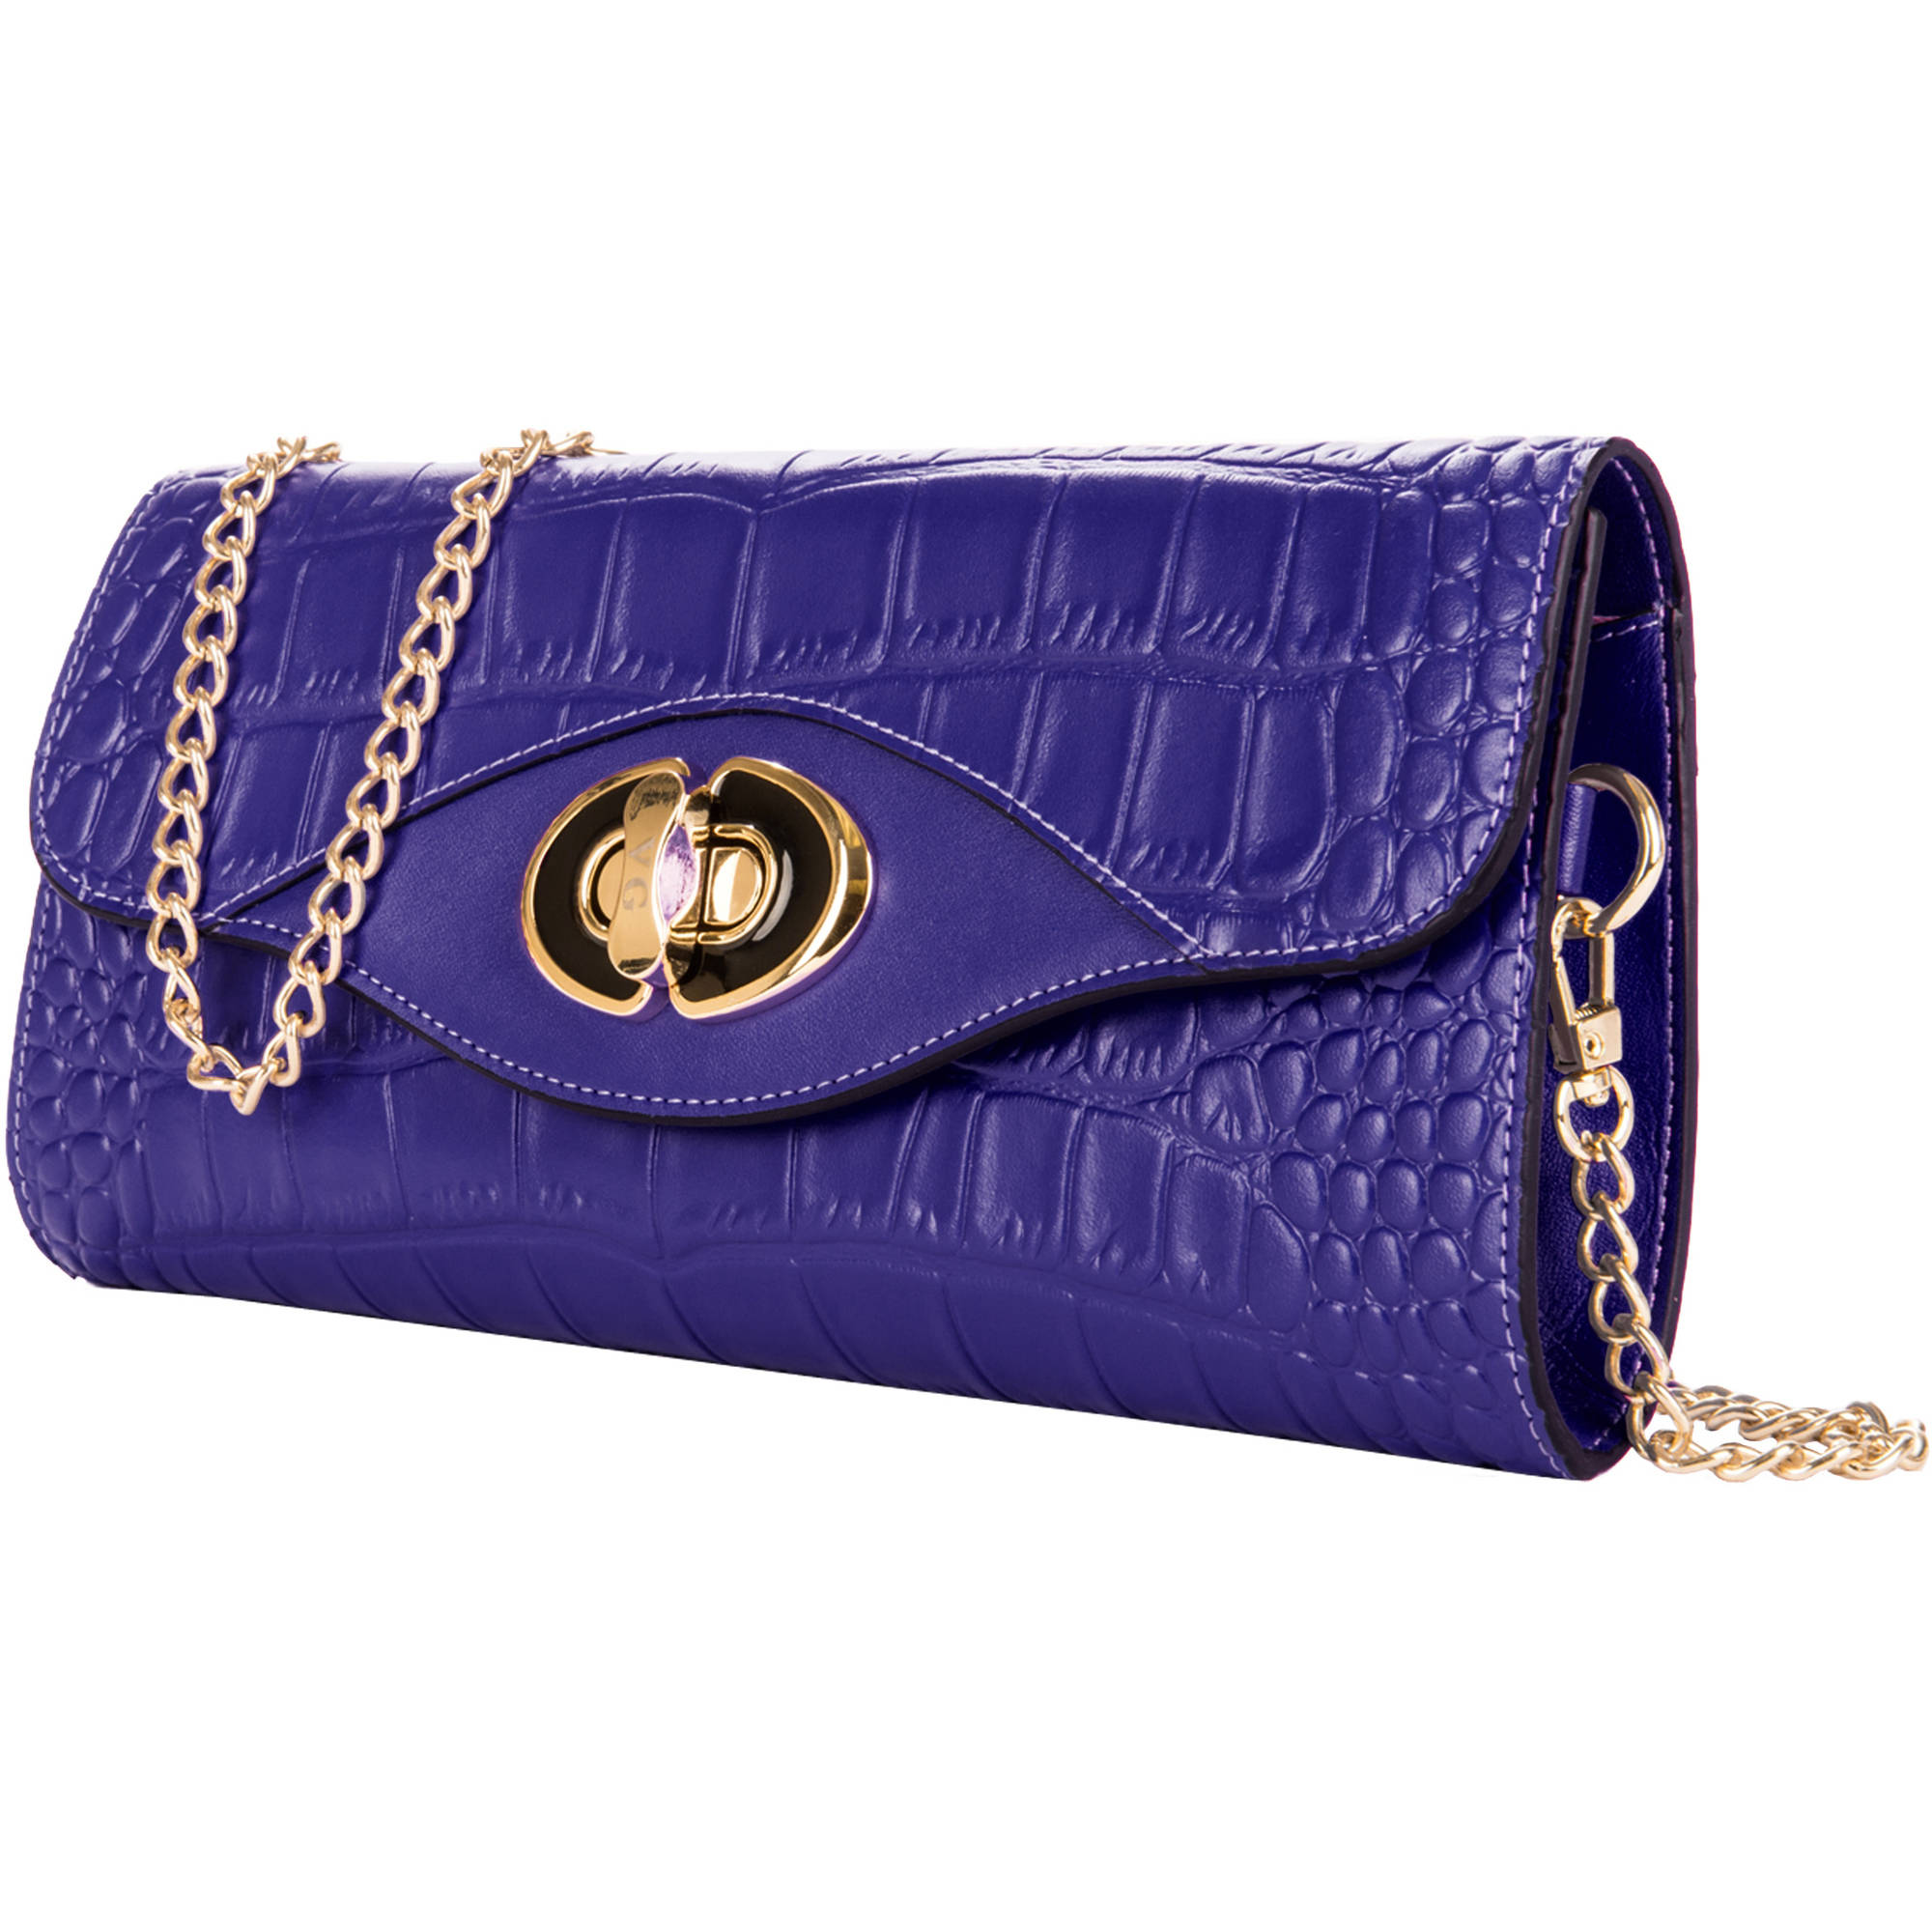 Genuine Leather Clutch Evening Bag with Chain Shoulder Strap